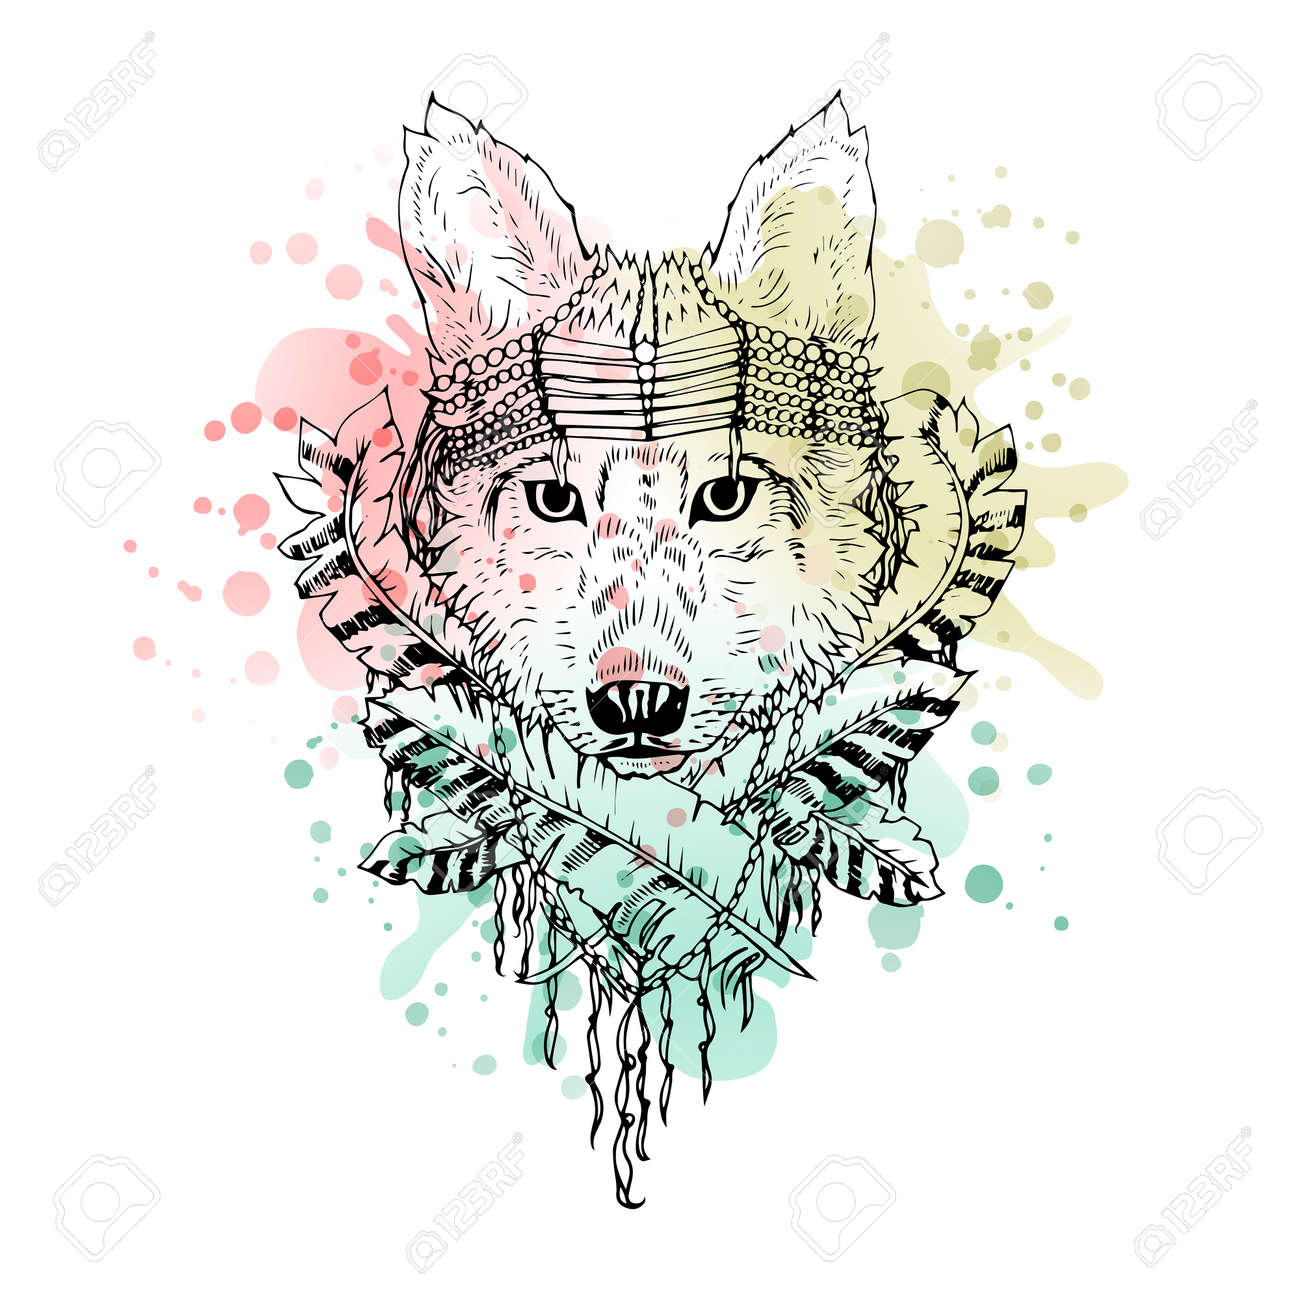 Black and white wild animal wolf head abstract art tattoo doodle cketch, boho style. Watercolor splash. Design for shirt, bag, jacket, package, phone case and so on. Vector illustration. - 52248795